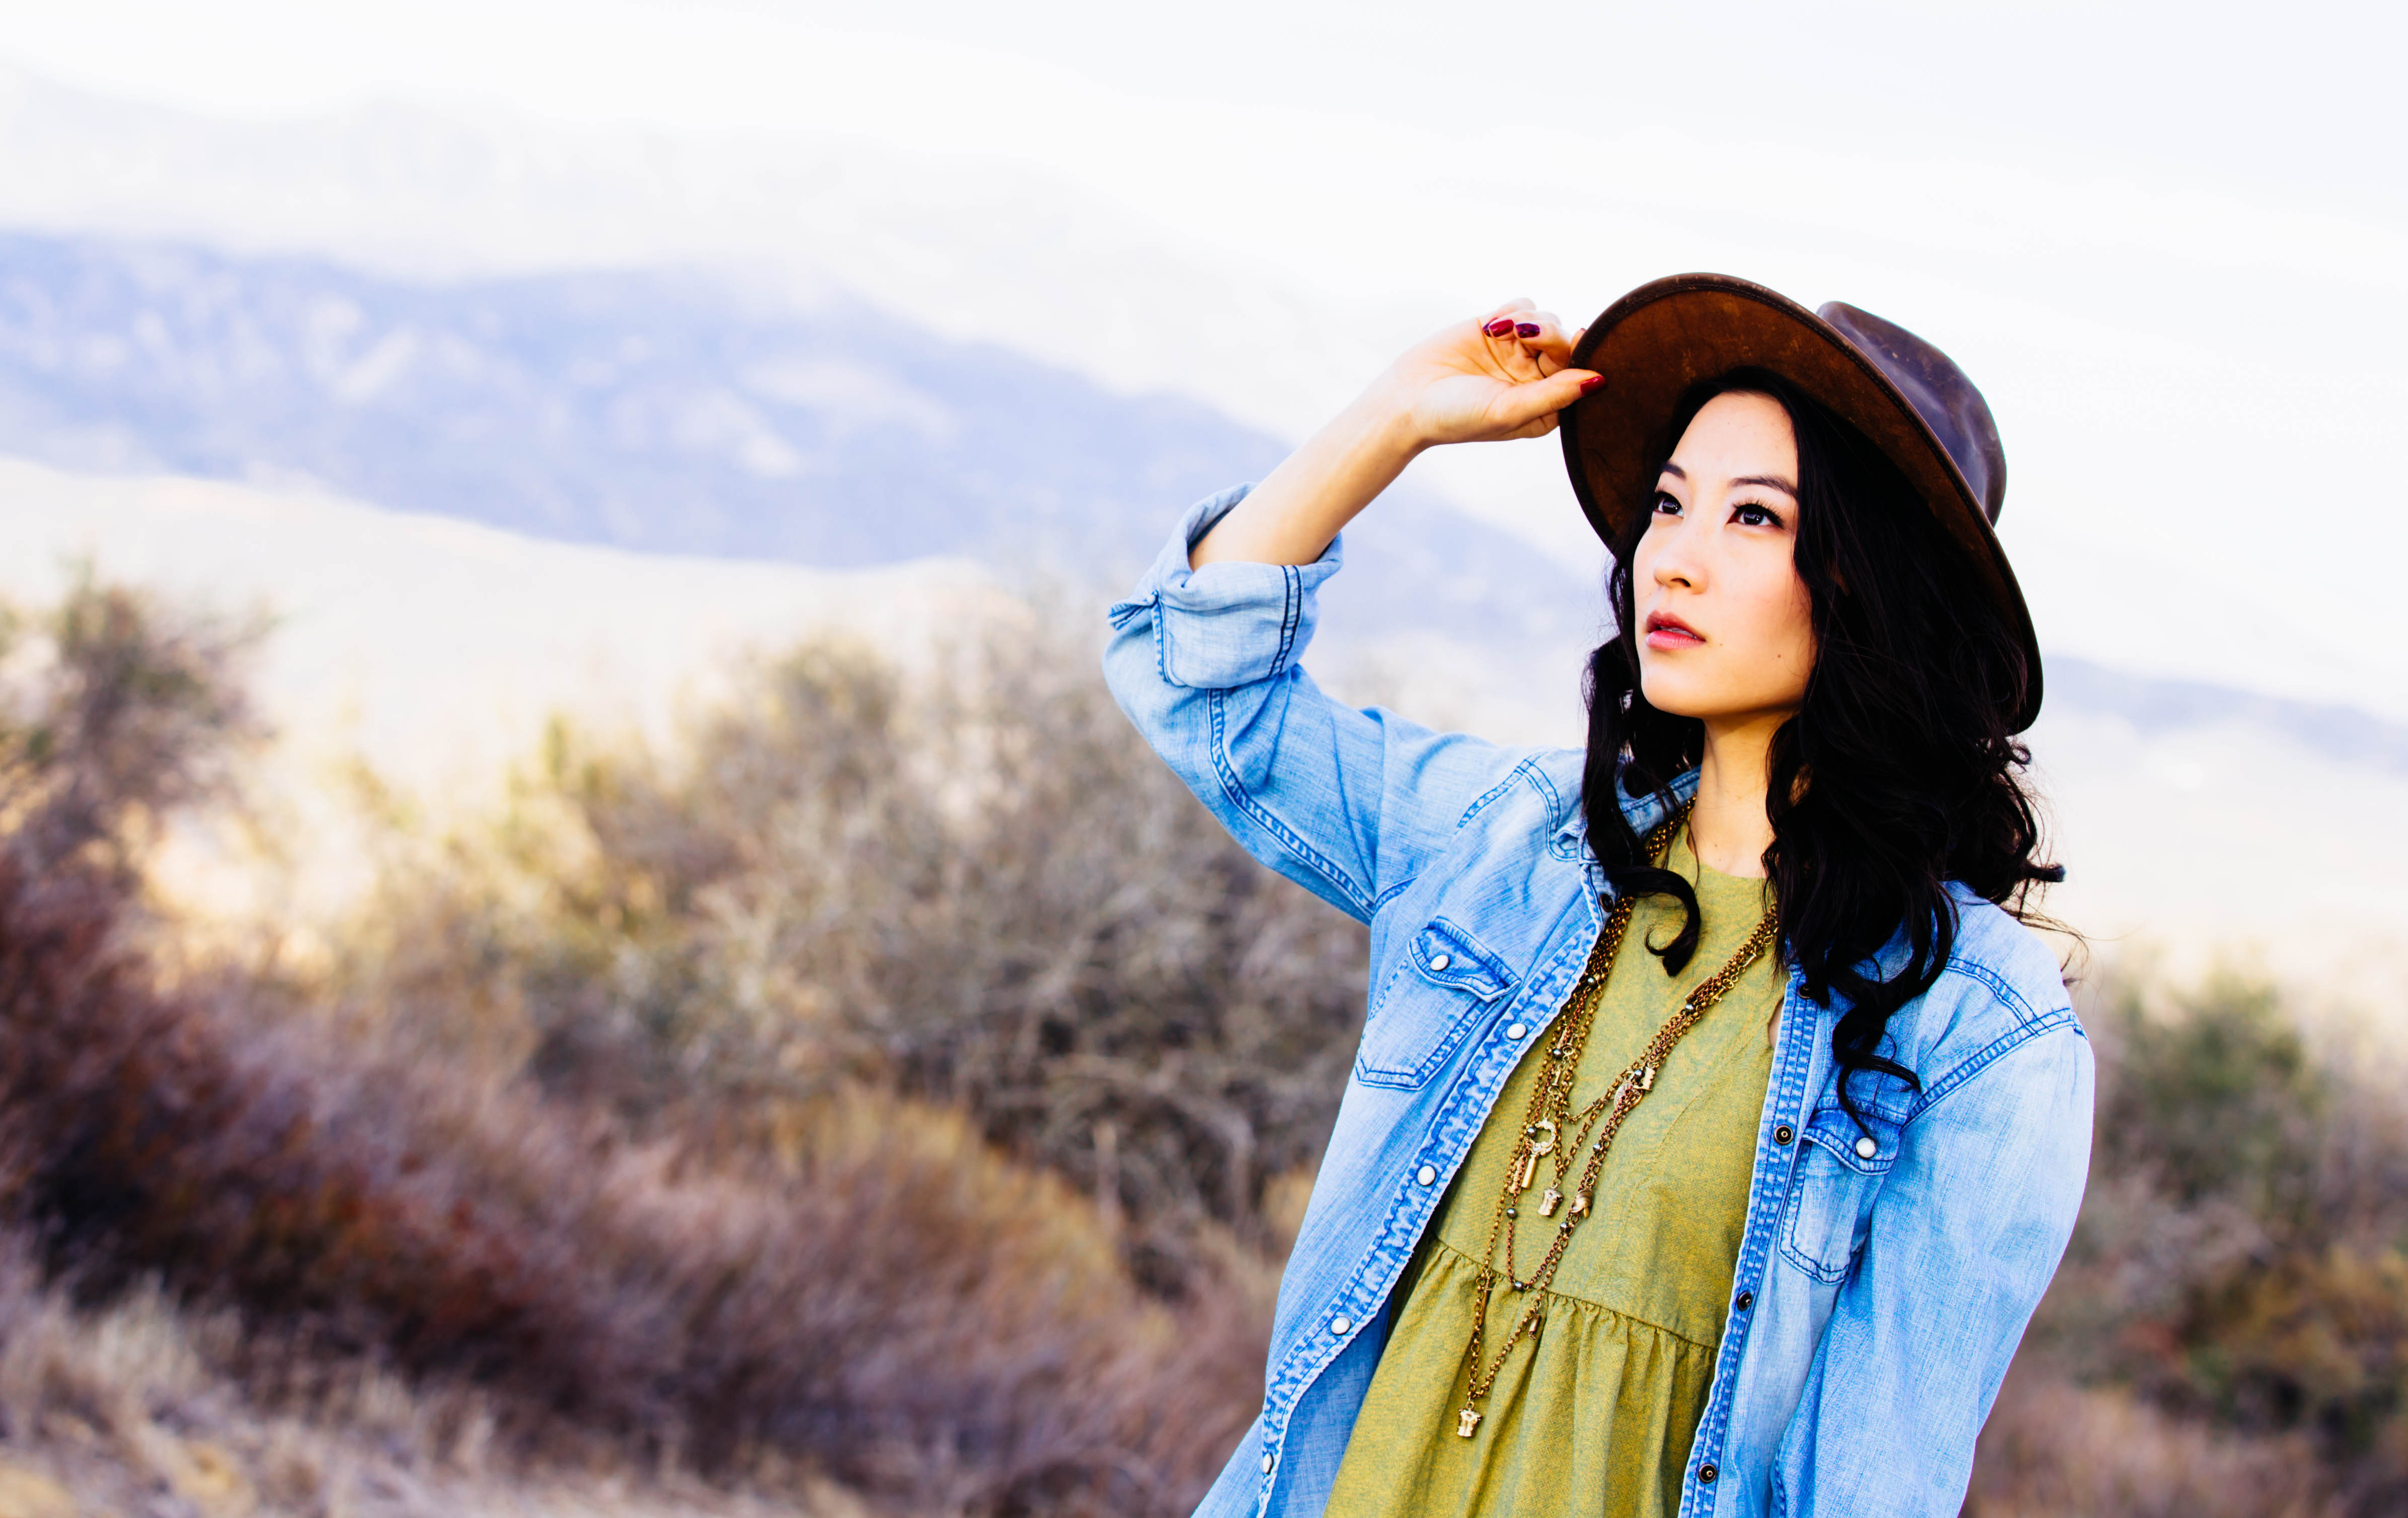 4782x3014 - Arden Cho Wallpapers 3